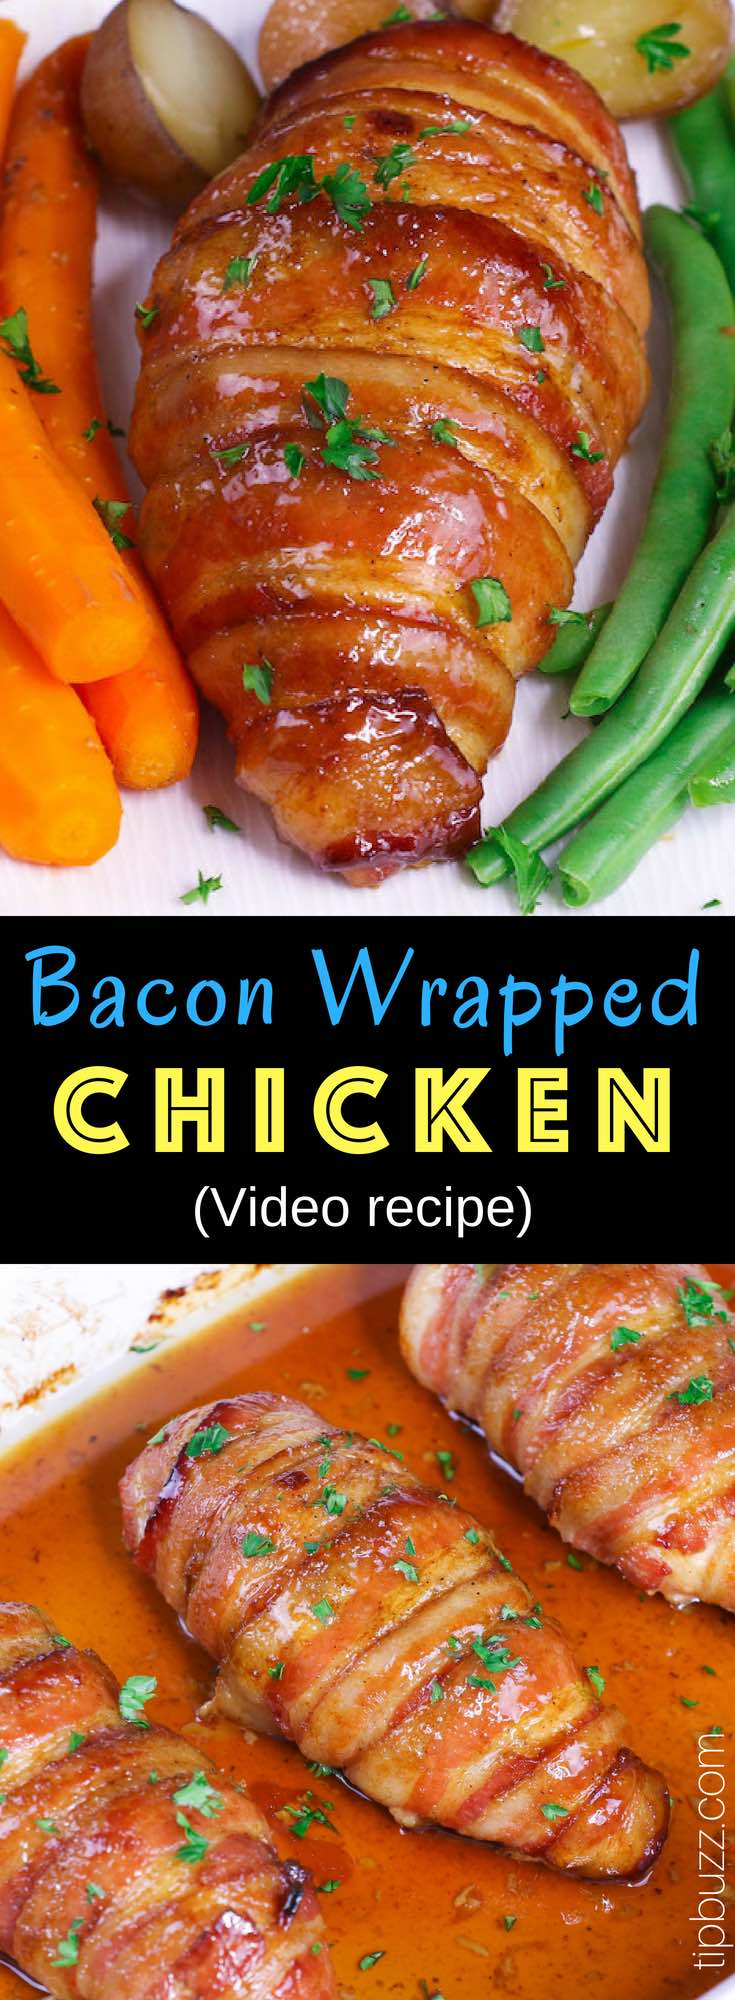 Brown Sugar Bacon Wrapped Chicken Breasts: a simple recipe that everyone will love. Chicken is rubbed with brown sugar and seasonings, wrapped in bacon and baked to golden crispy perfection! So juicy and flavorful. Quick and Easy Dinner. Video Recipe #BaconChicken #BaconWrappedChicken